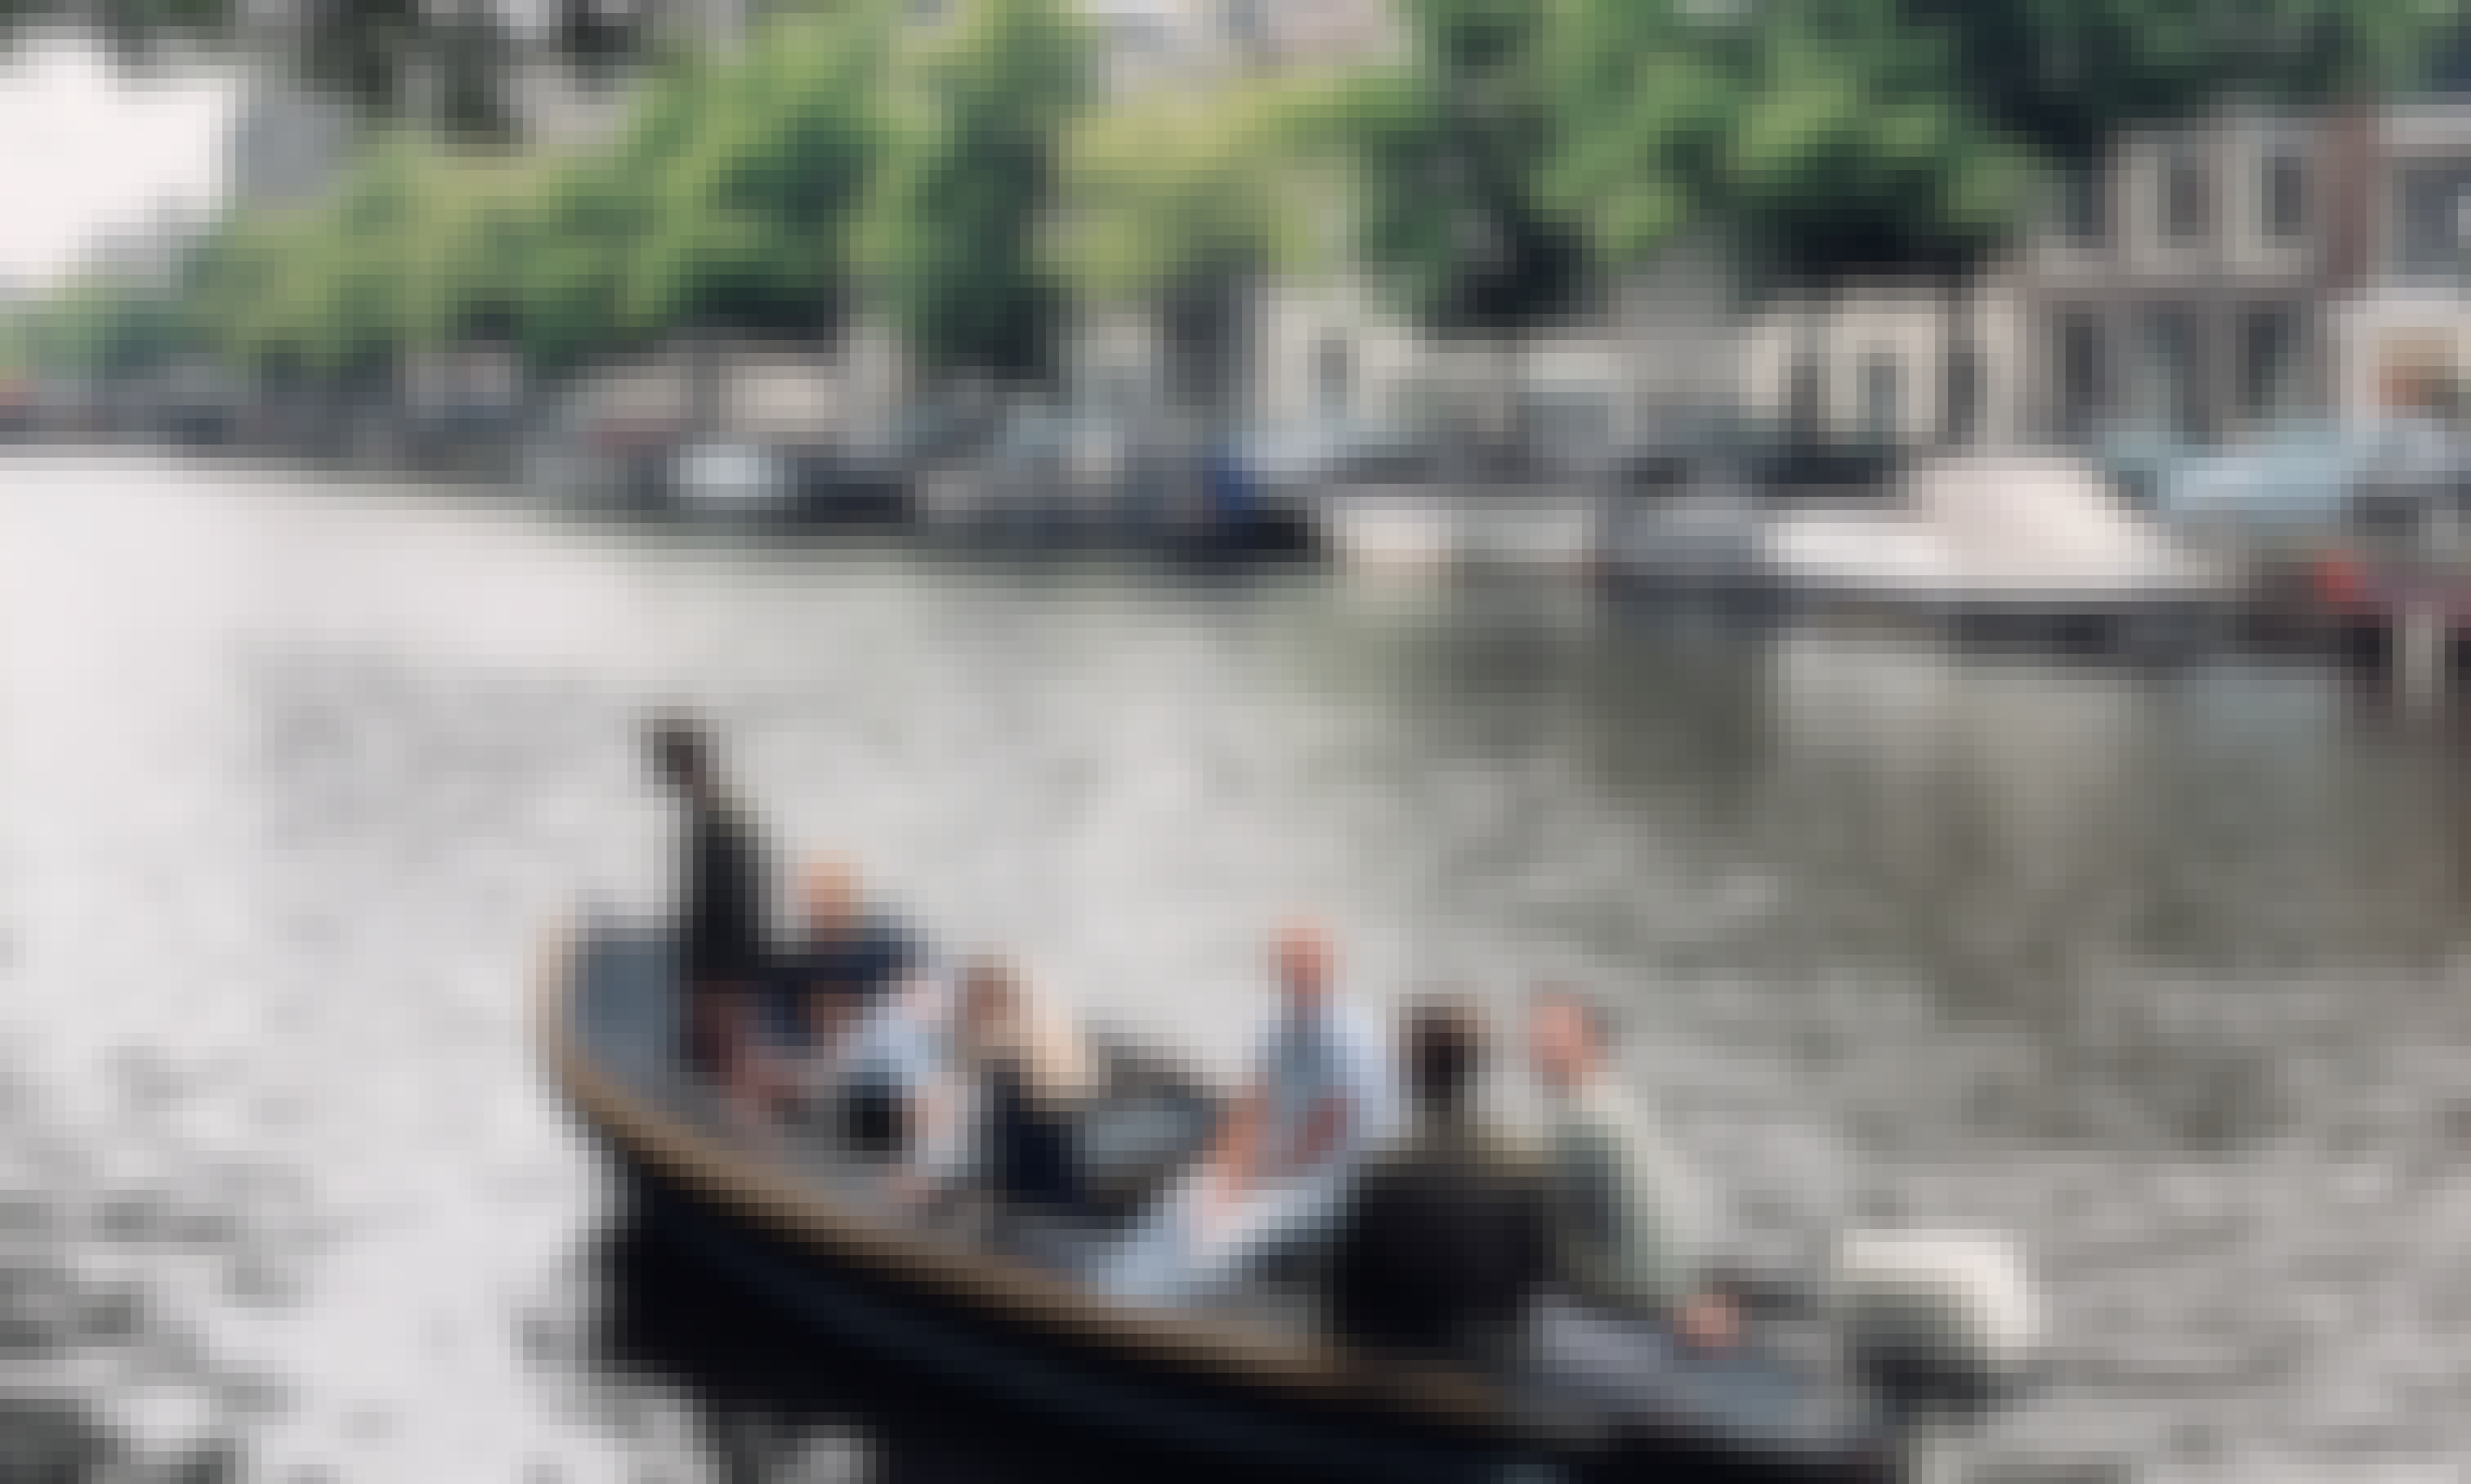 Rent a 18 ft steel canal boat in Amsterdam, Netherlands